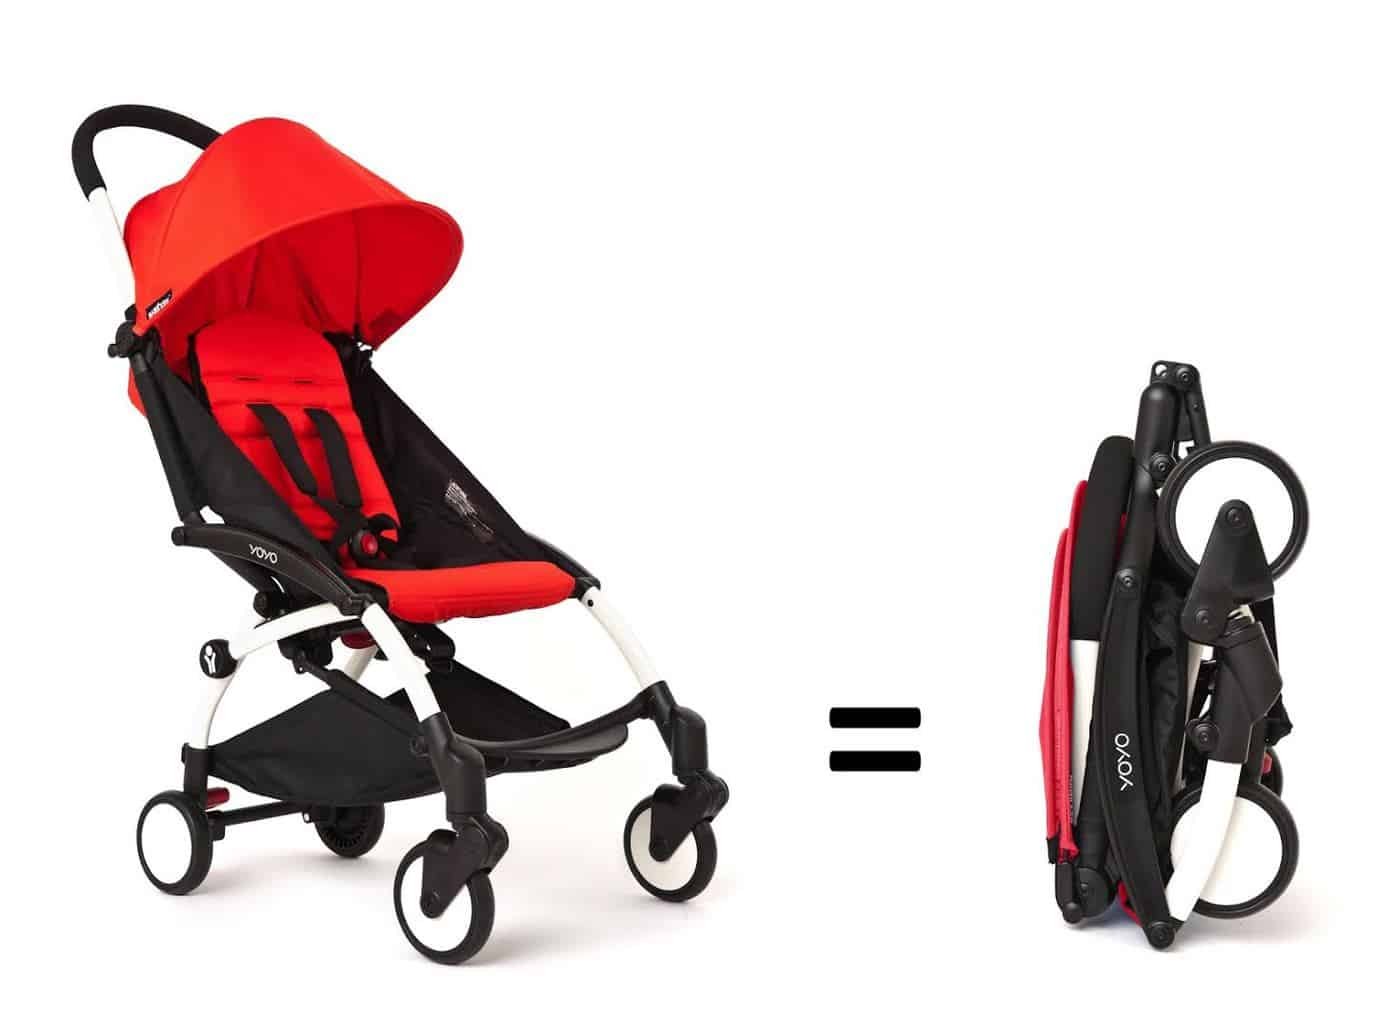 Best Stroller for a Walk-up Apartment must be compact and easy to carry around